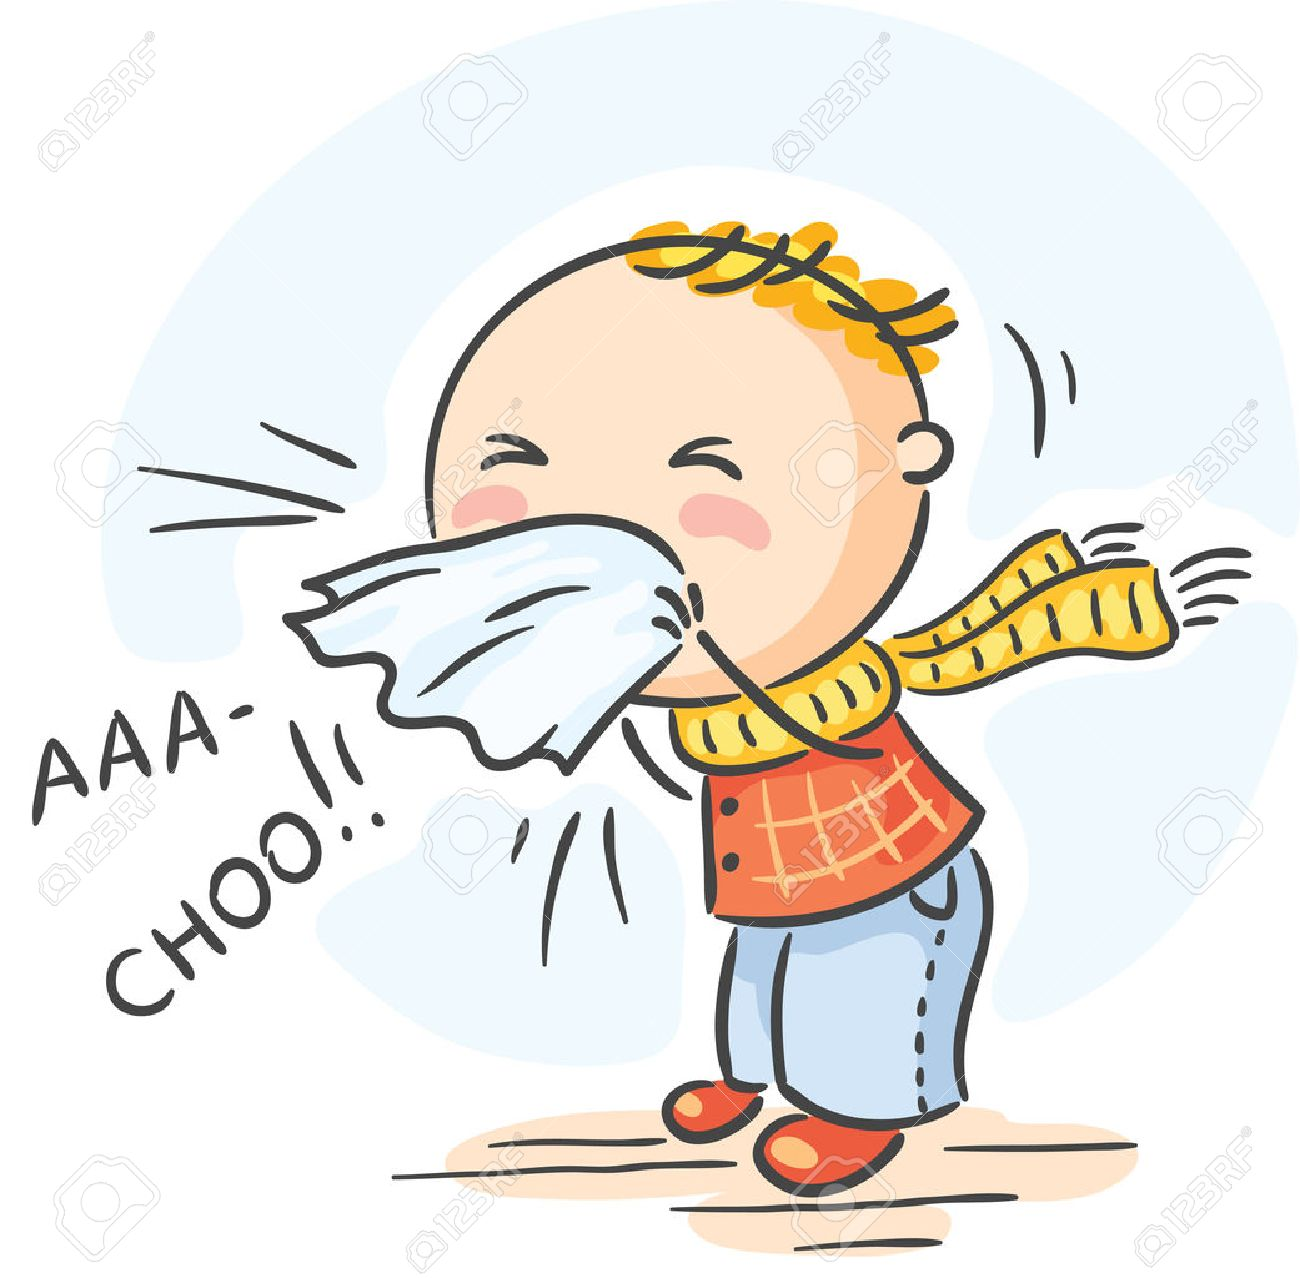 Flu  >> Cartoon Child Has Got Flu And Is Sneezing Royalty Free Cliparts